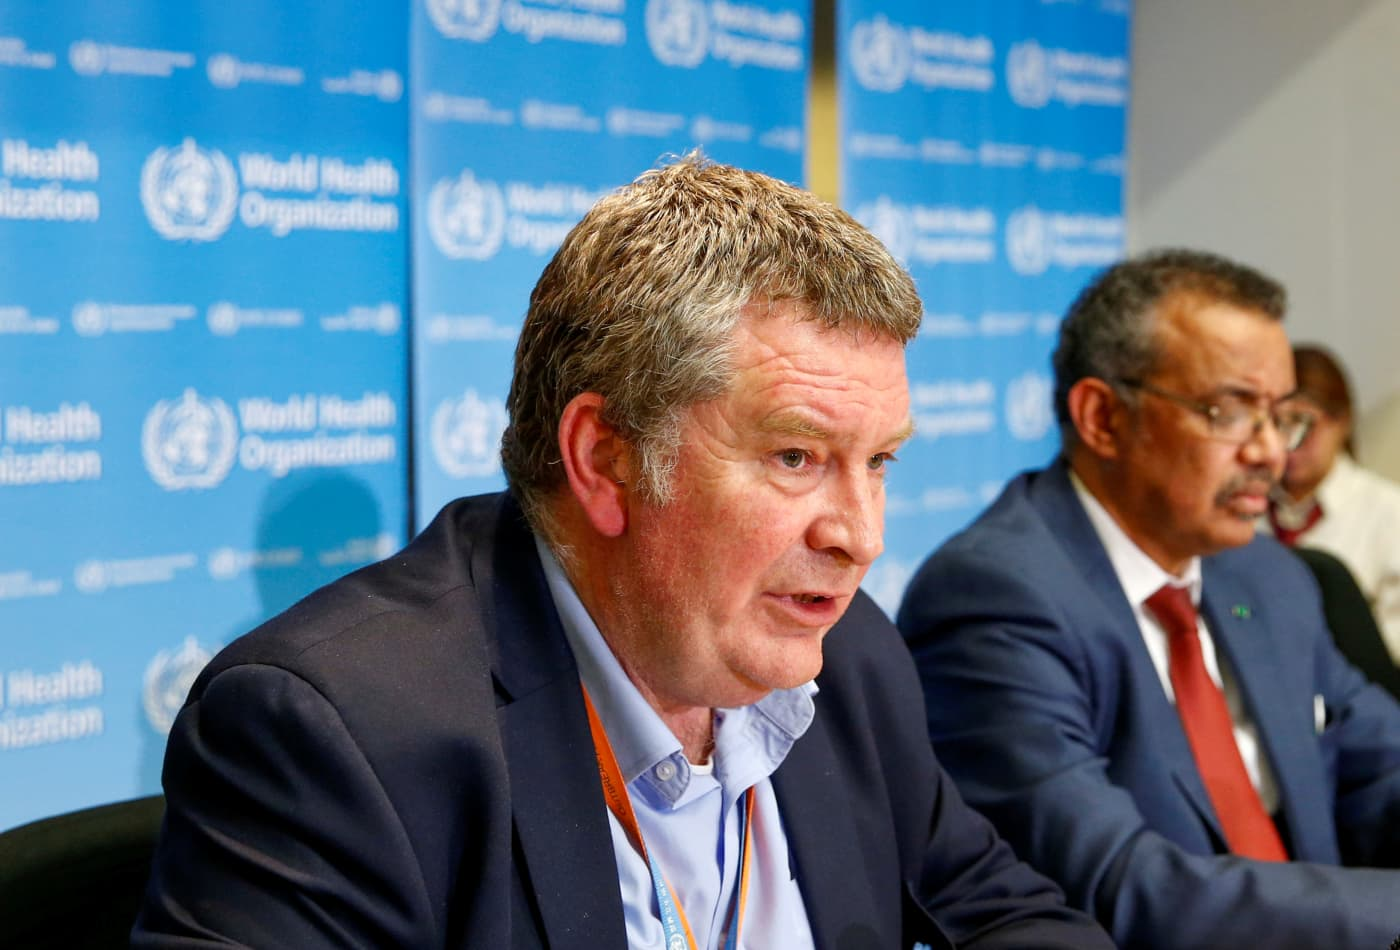 Watch live: World Health Organization holds press conference on the coronavirus outbreak as pandemic worsens